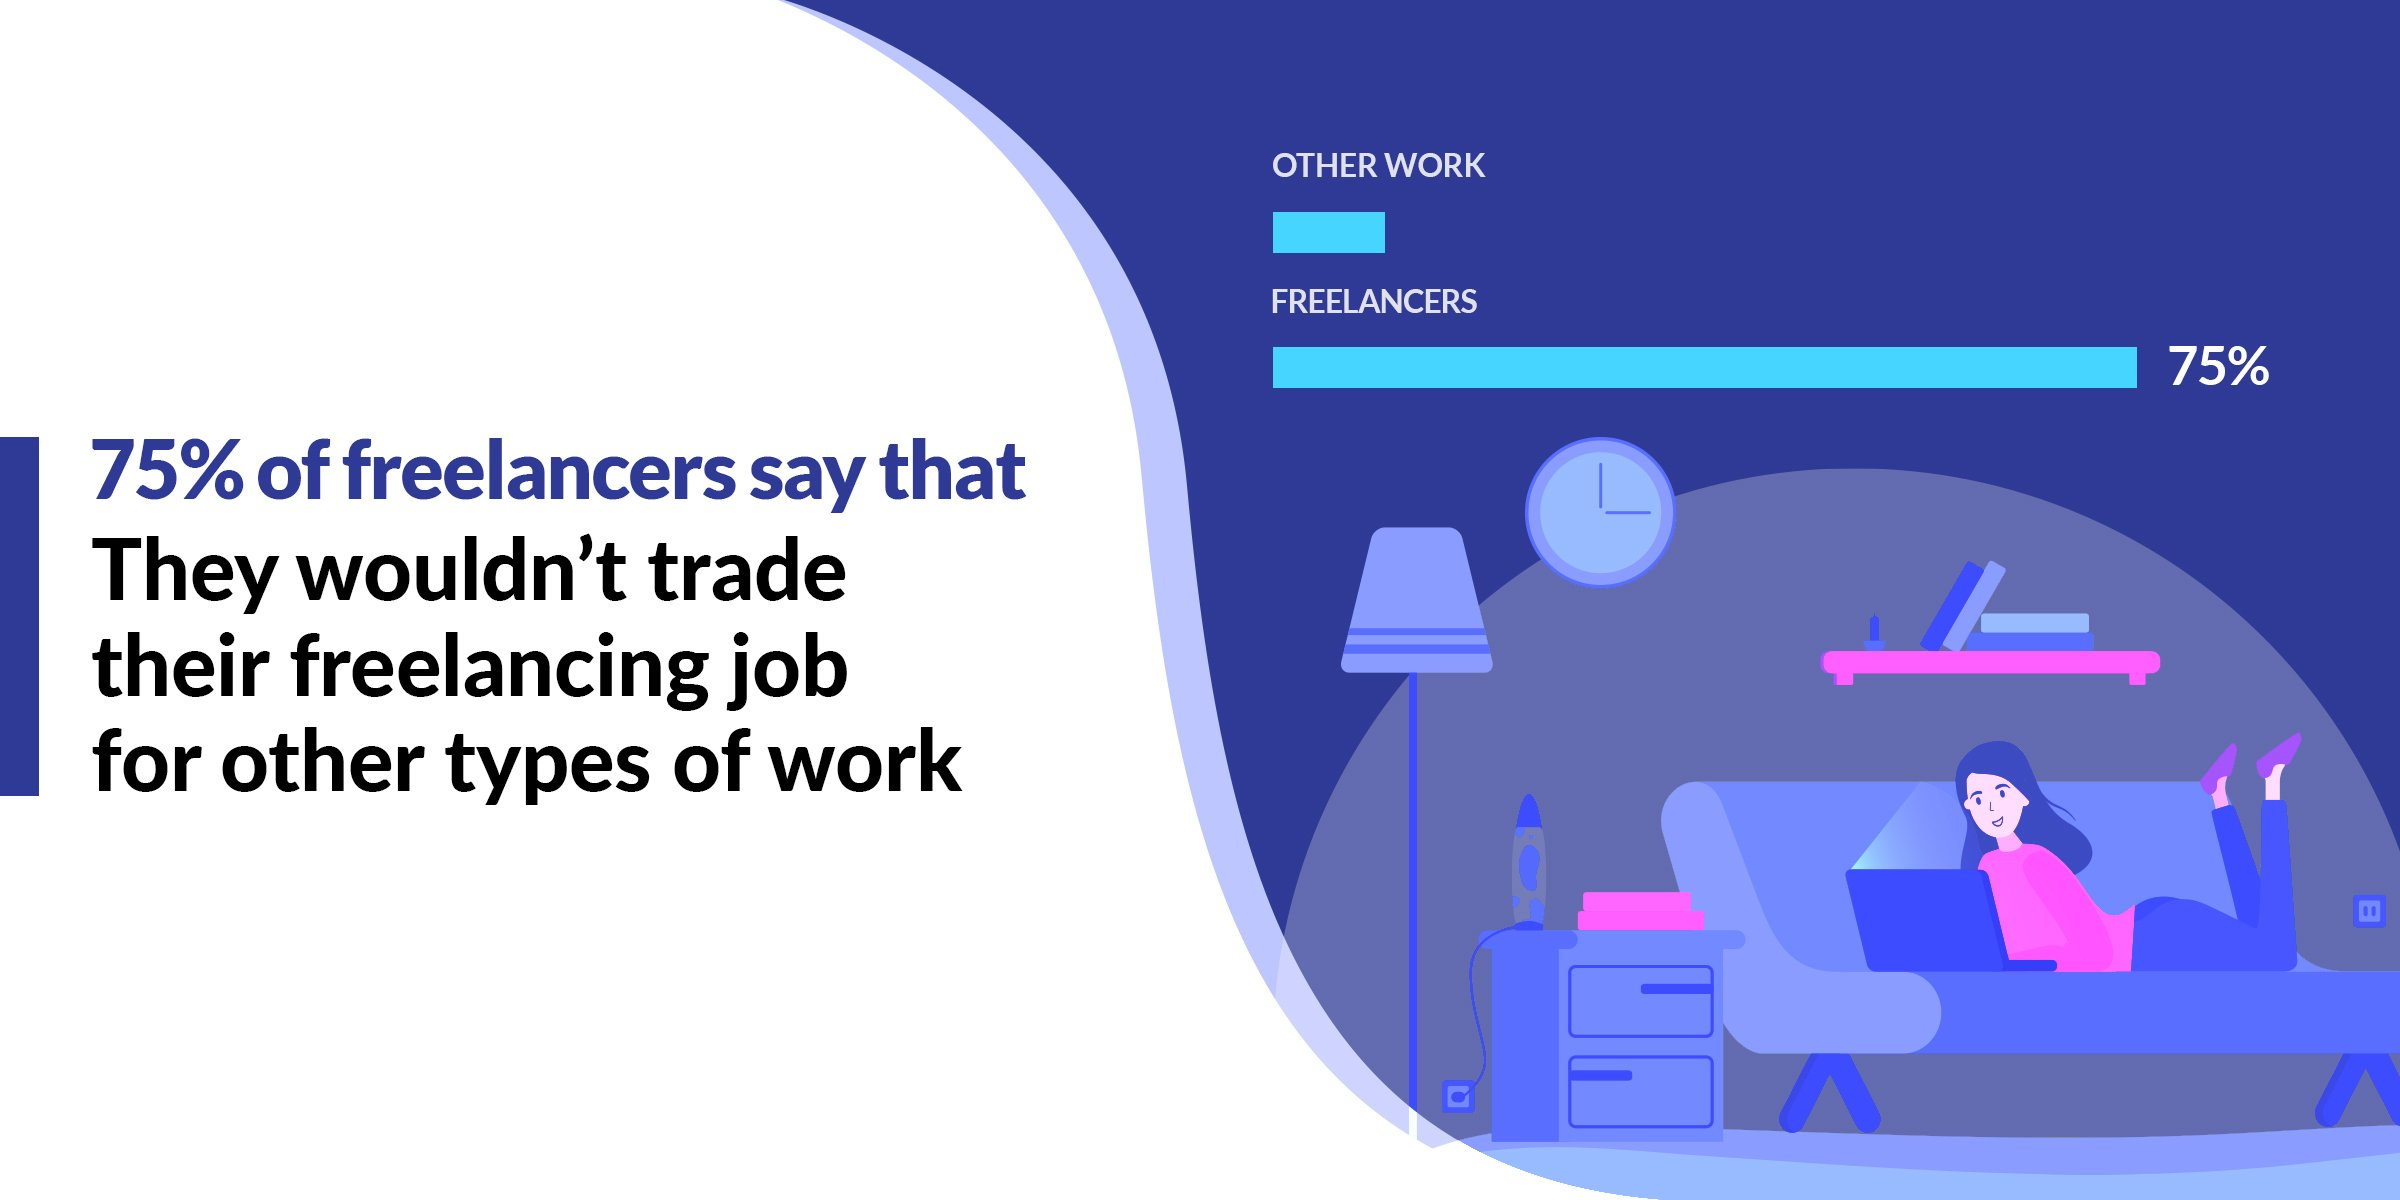 Freelance Statistics - 75% of Freelancers Wouldn't Trade Their Freelancing Job